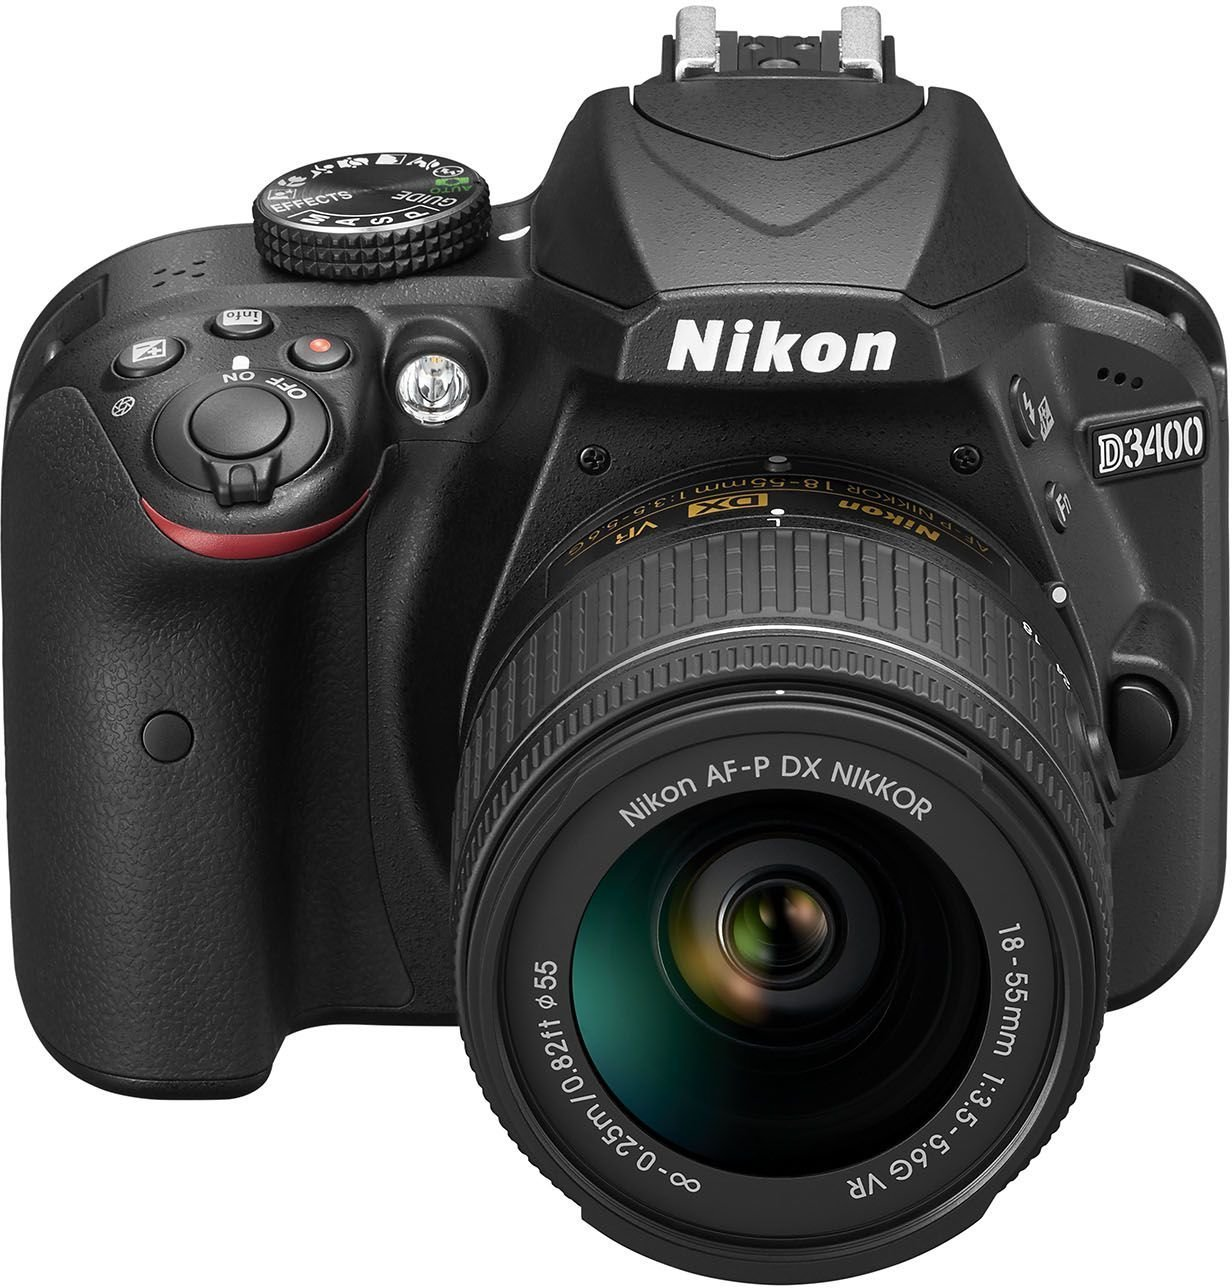 Nikon D3400. the best camera for travel